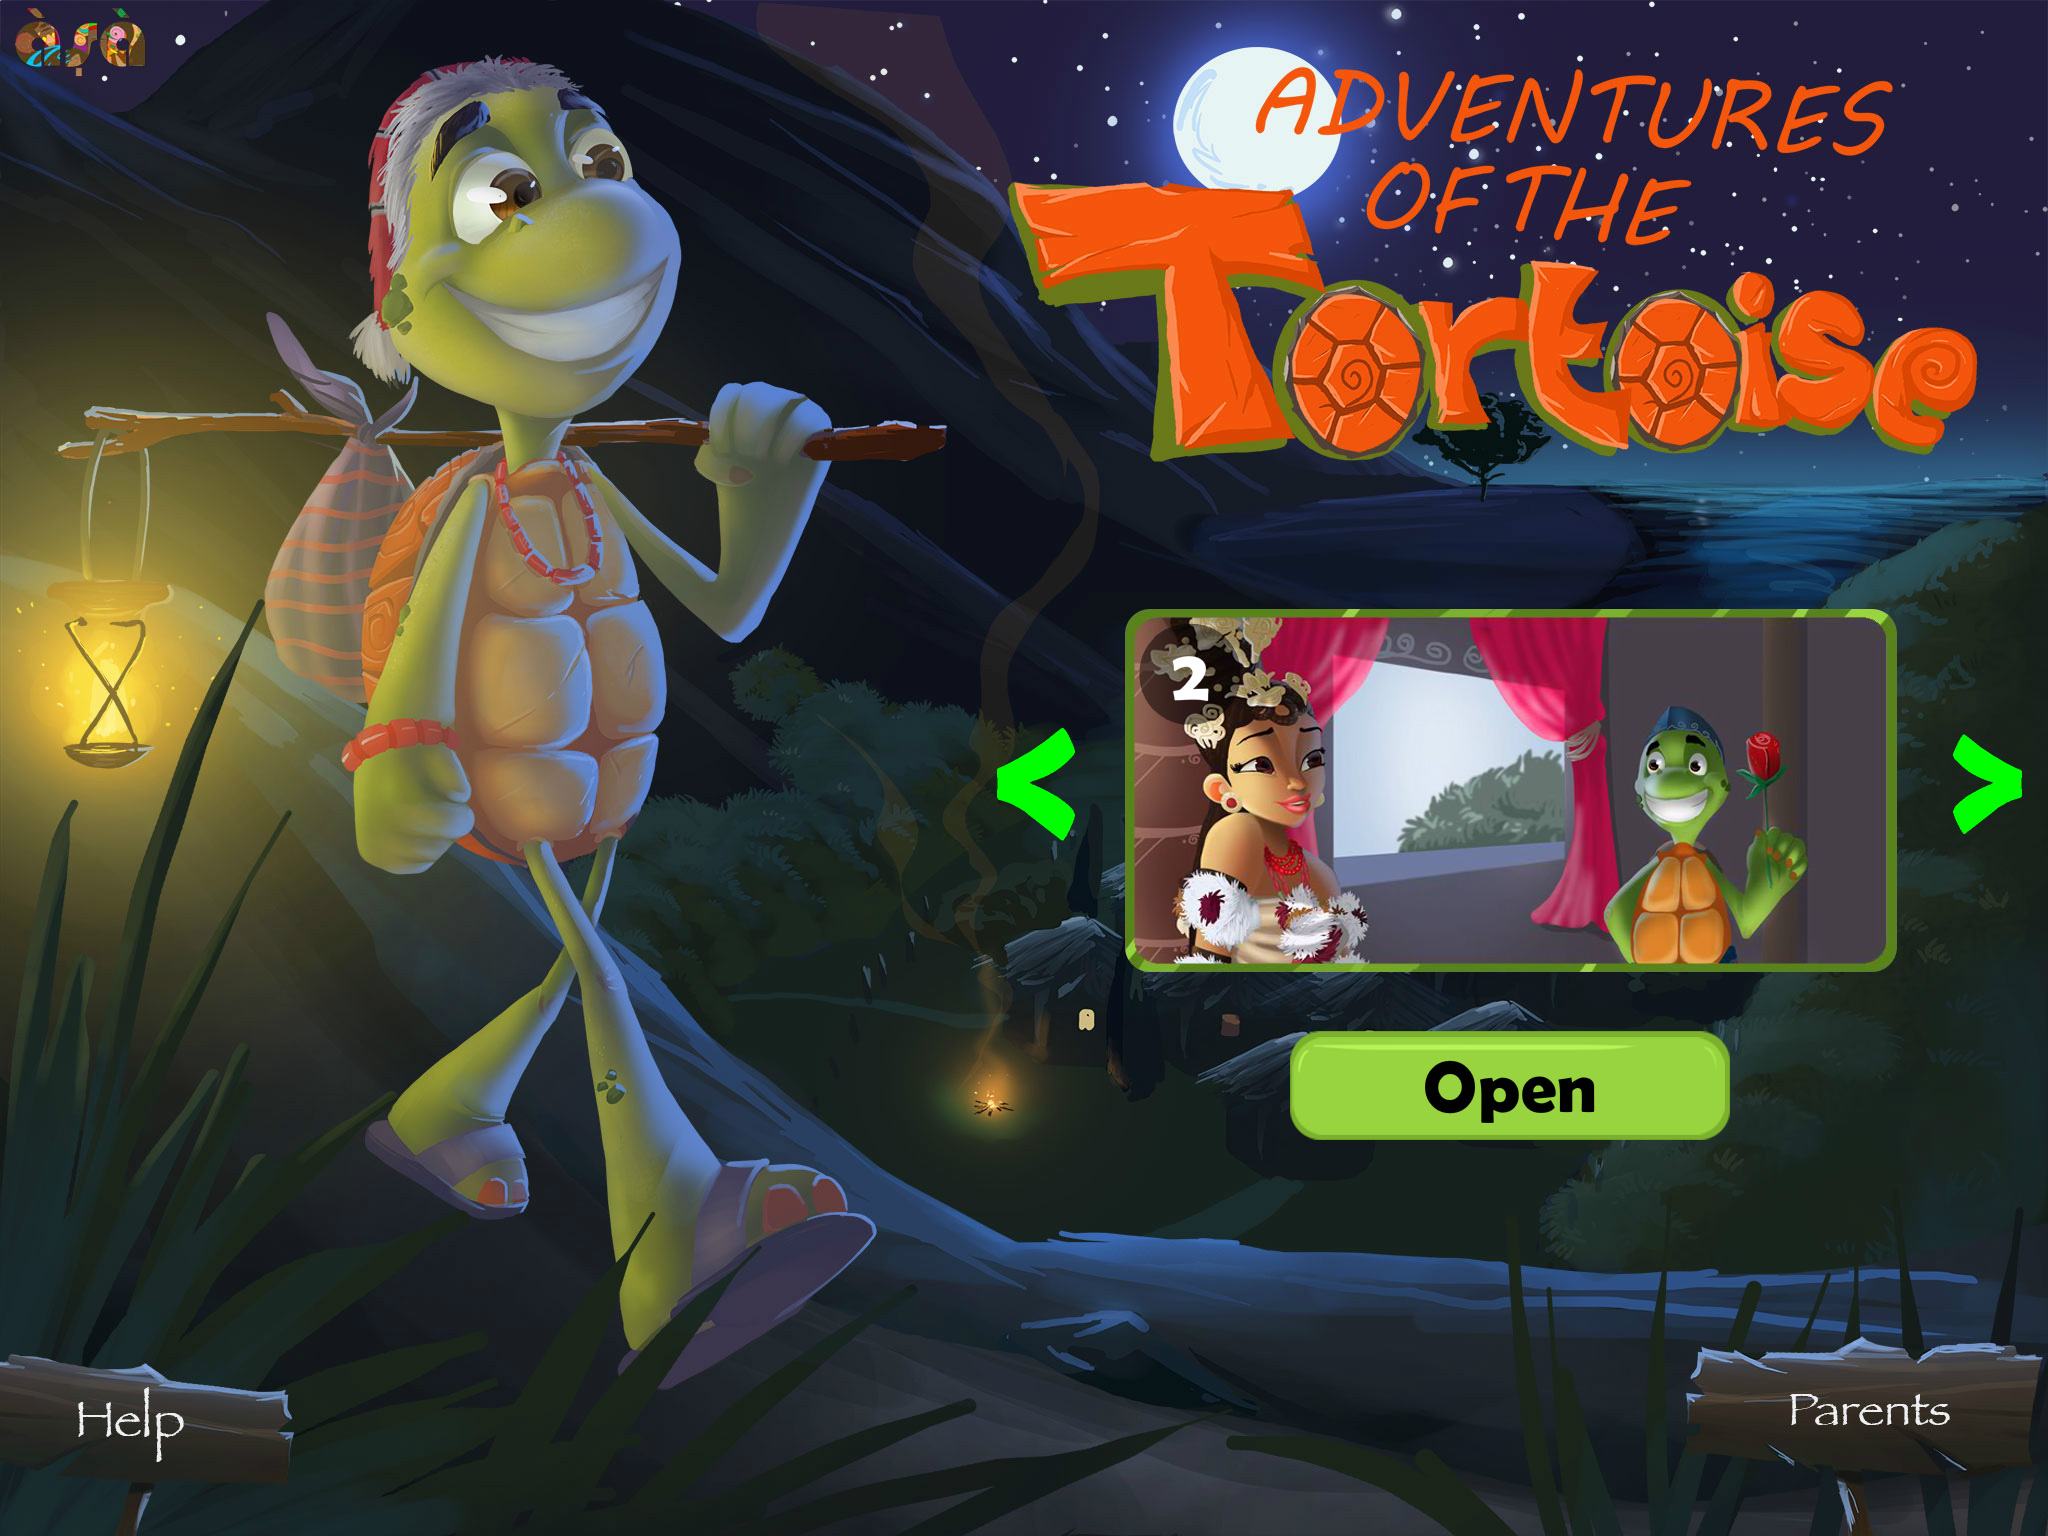 Adventures of the Tortoise